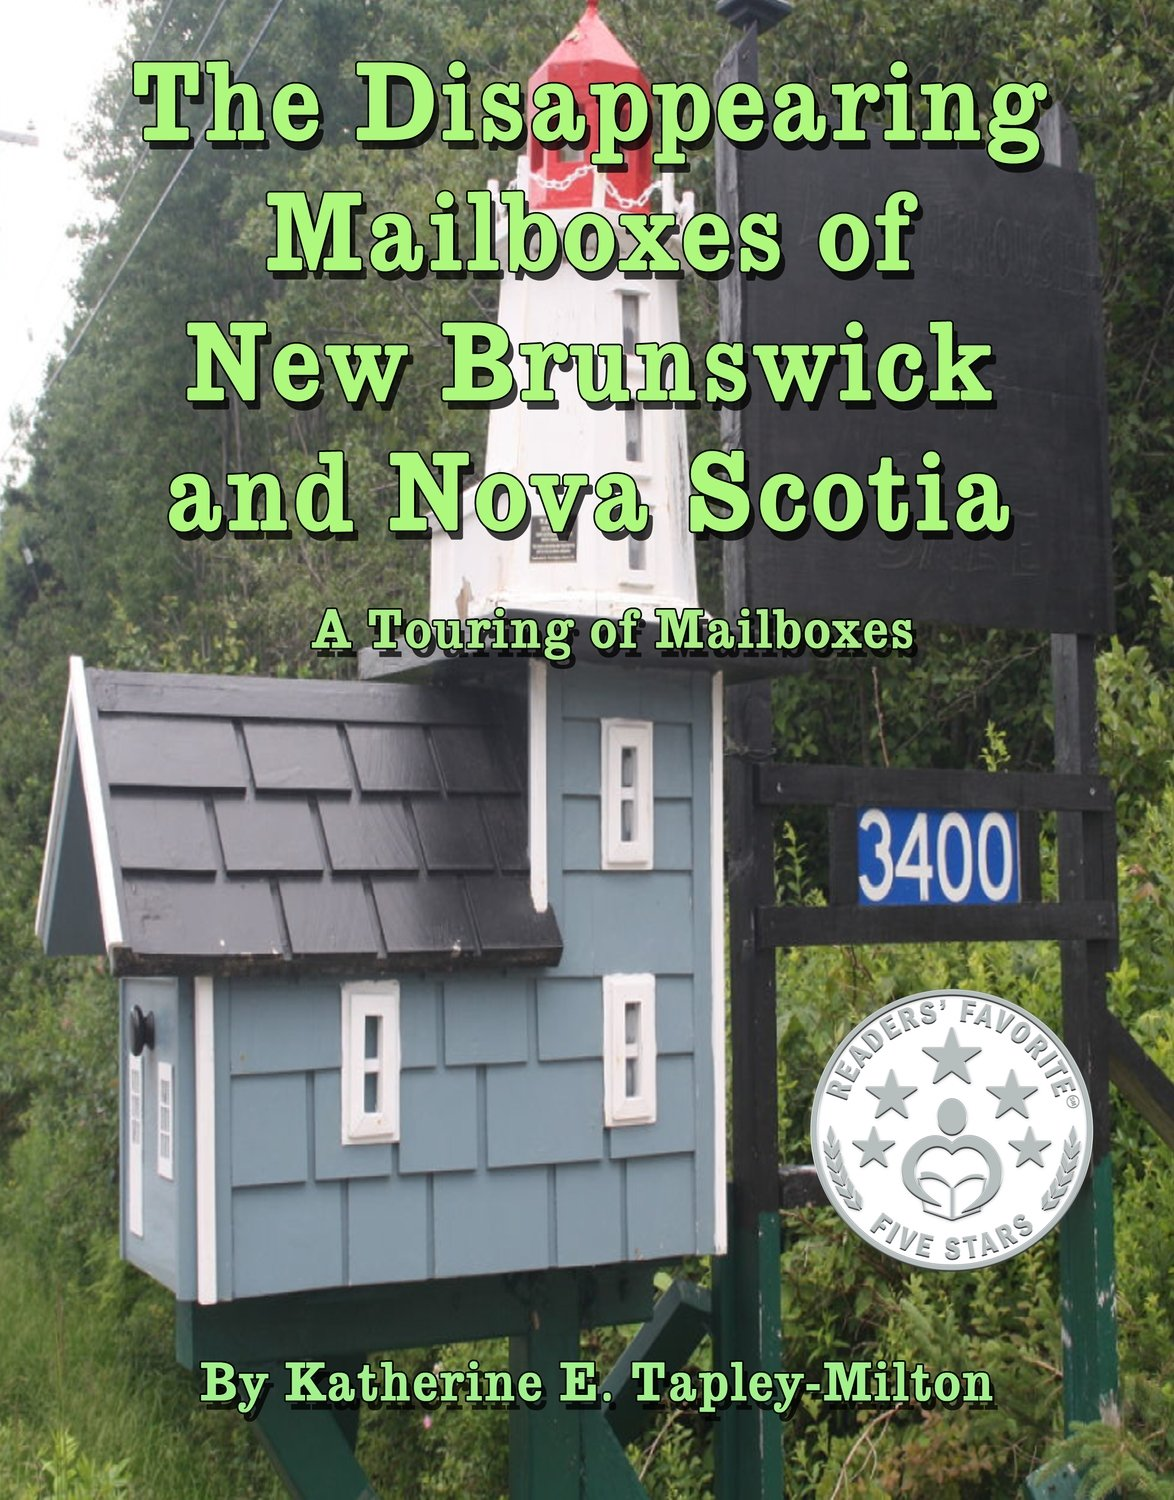 The Disappearing Mailboxes of New Brunswick and Nova Scotia